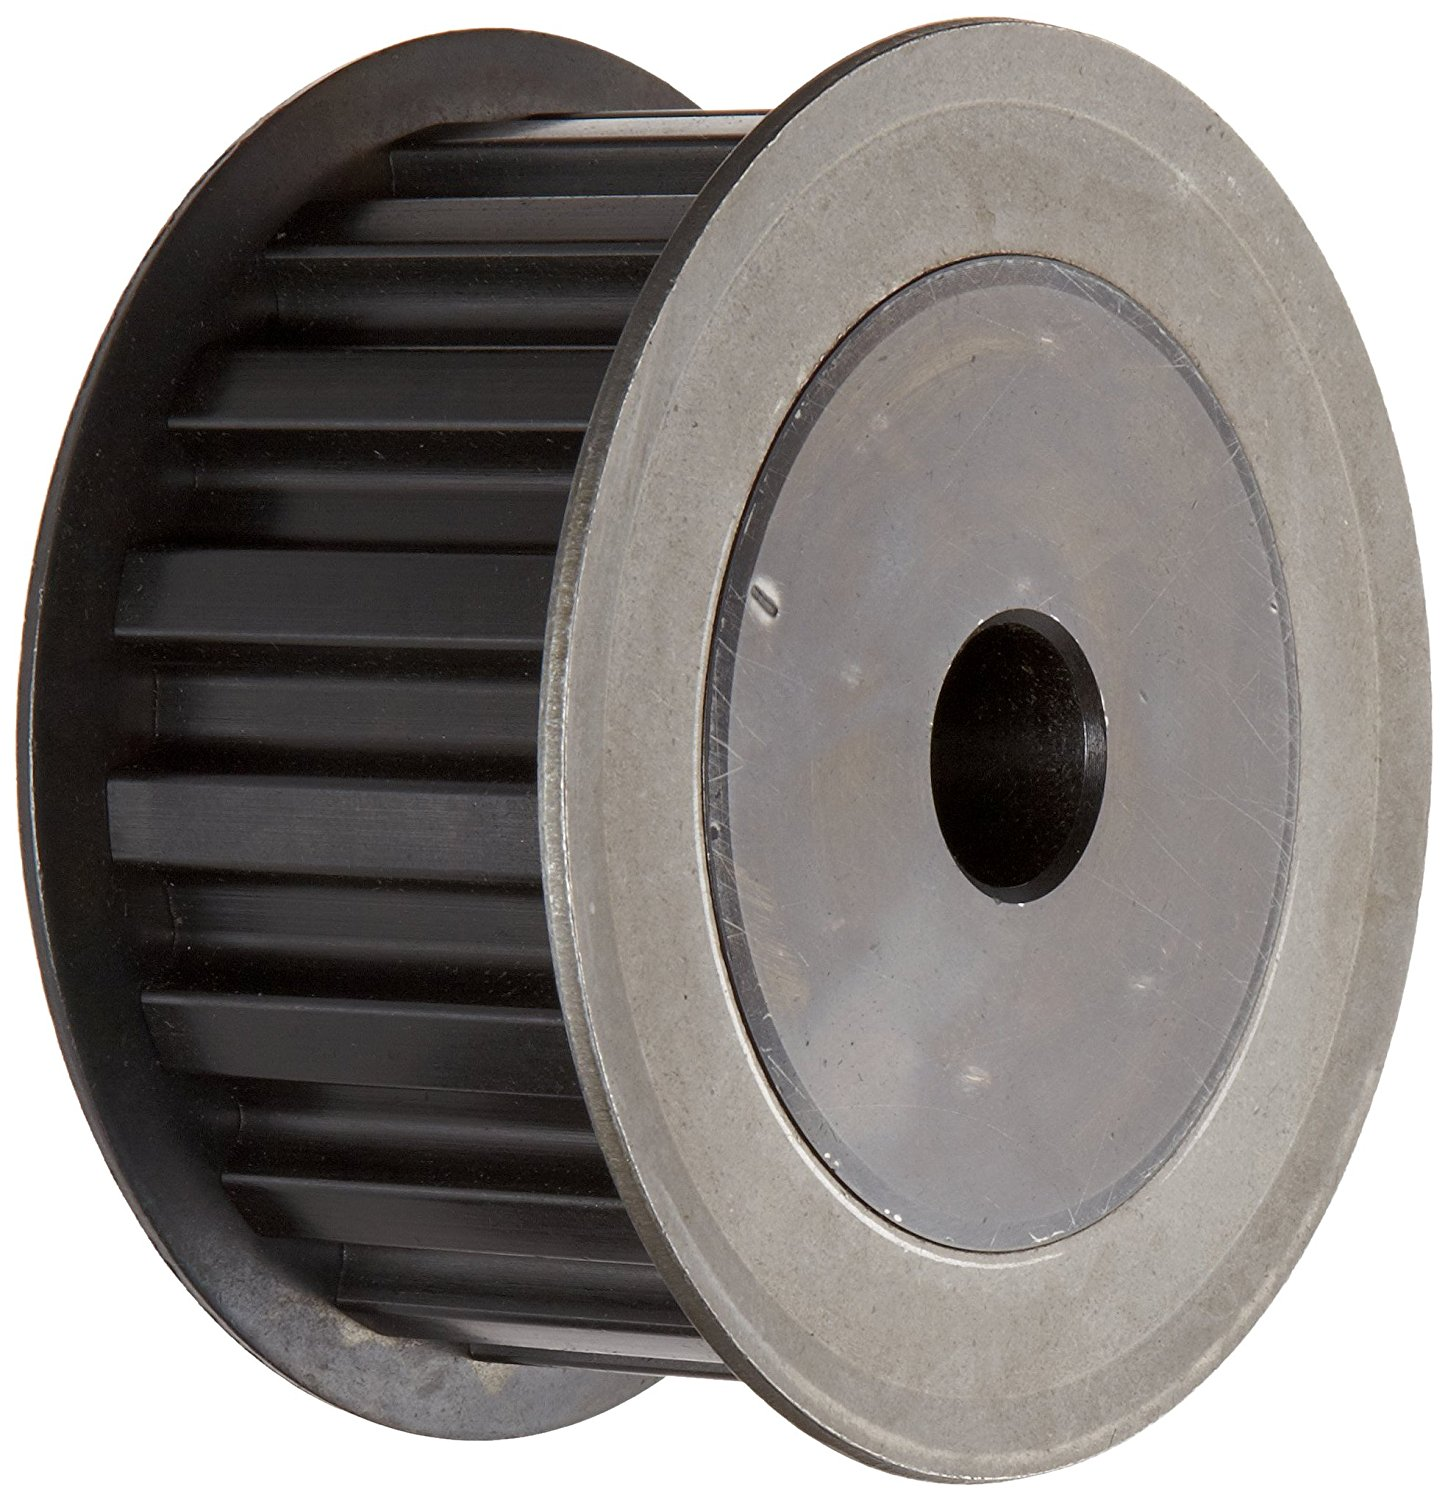 1//5 Pitch 0.955 Pitch Diameter 1//4 to 5//16 Bore Range 15 Groove Gates PB15XL037 PowerGrip Steel Timing Pulley for 1//4 and 3//8 Width Belt